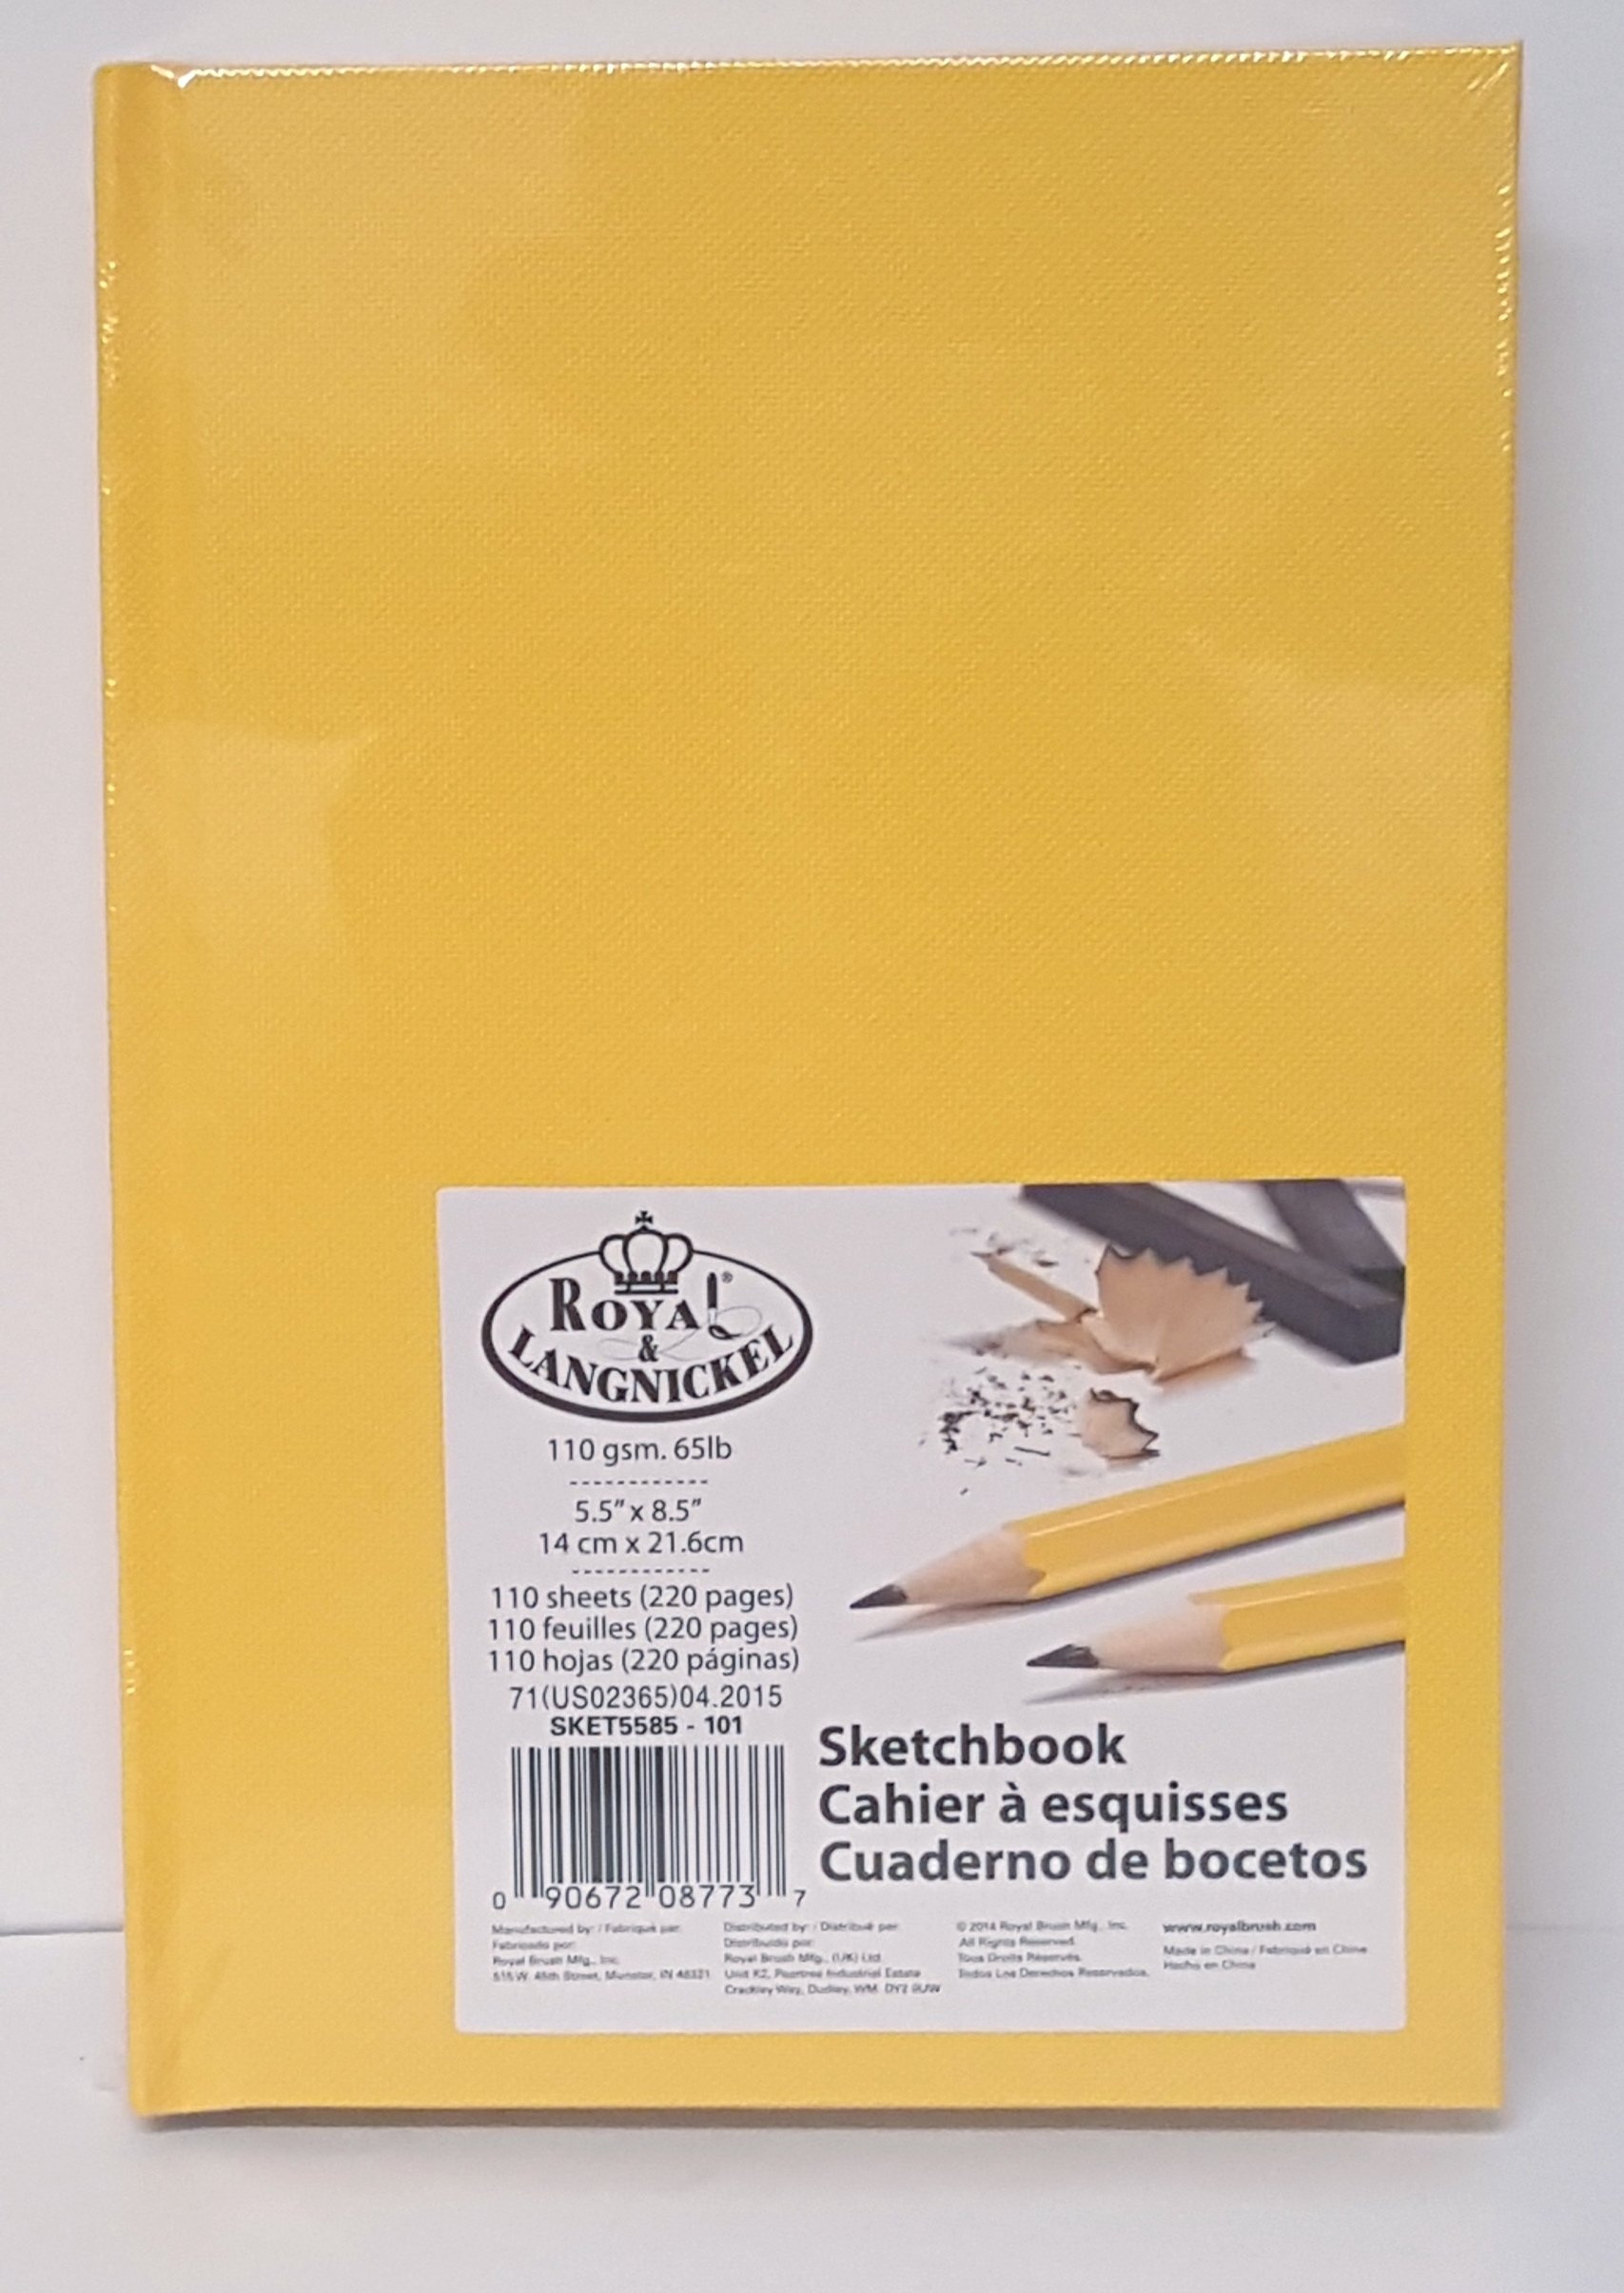 Royal Langnickel Sketchbook 5.5'' X 8.5'' 220 pages Yellow HardCover Drawing Book